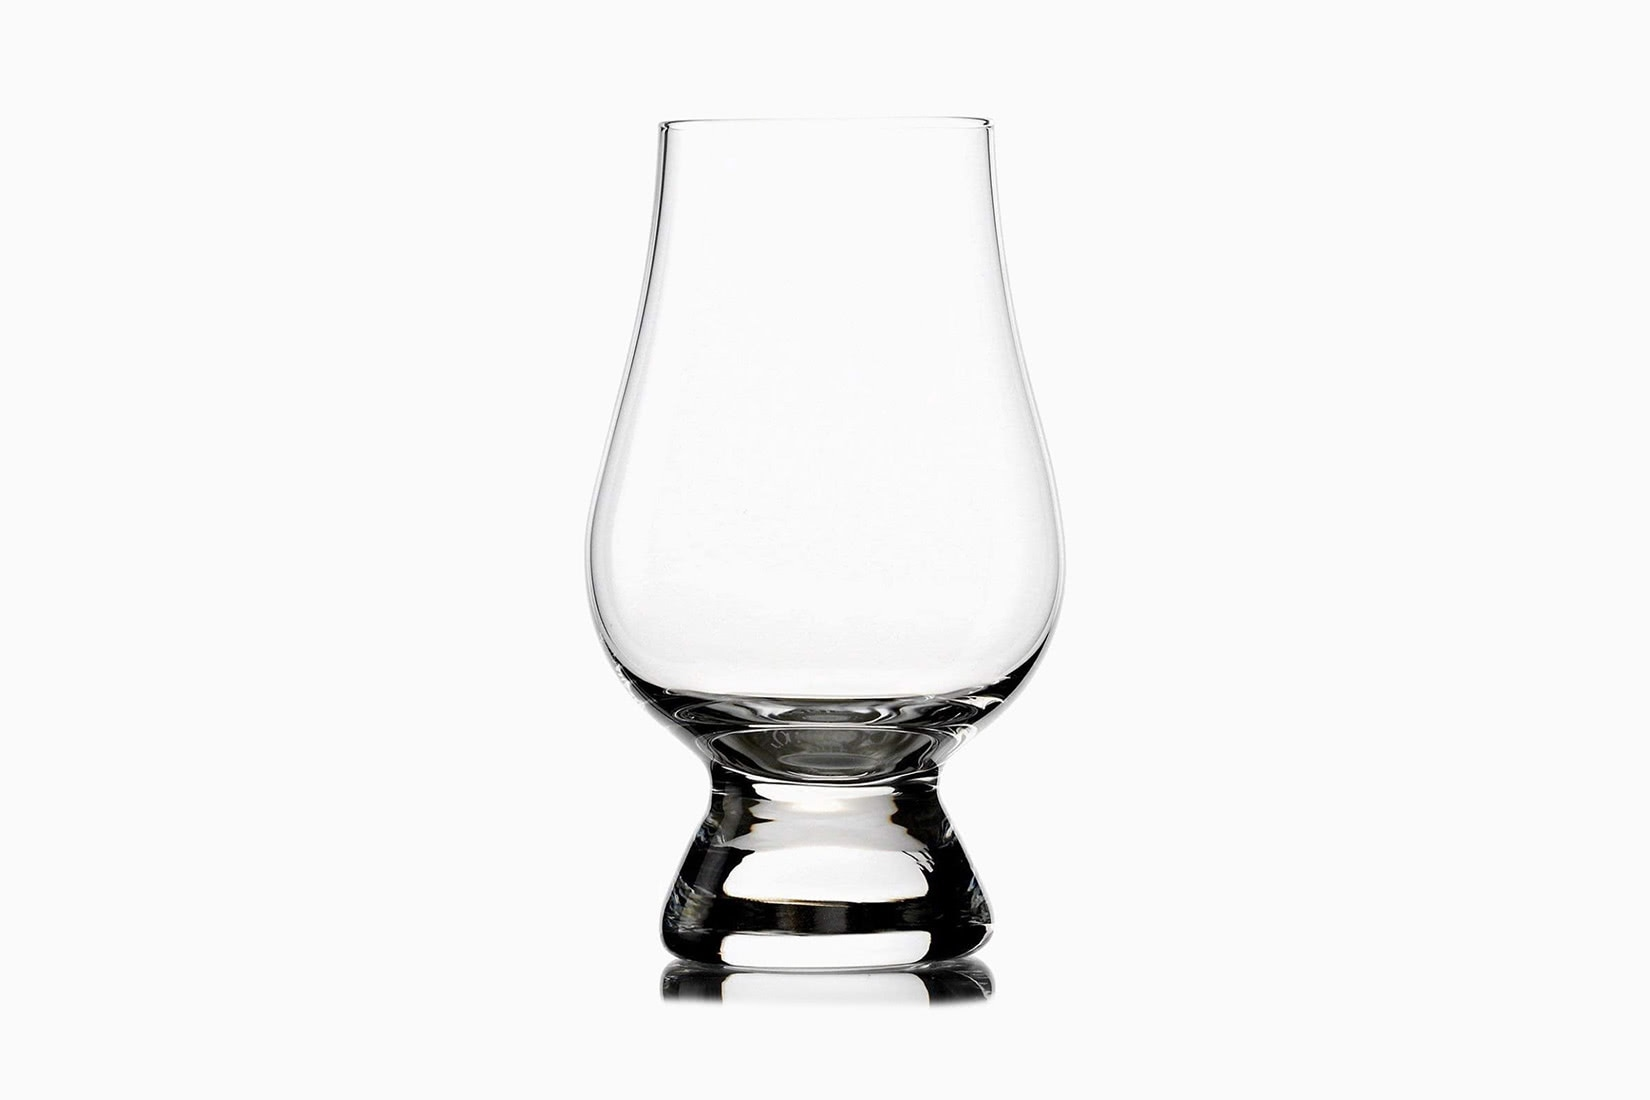 best whisky glass glencairn - Luxe Digital